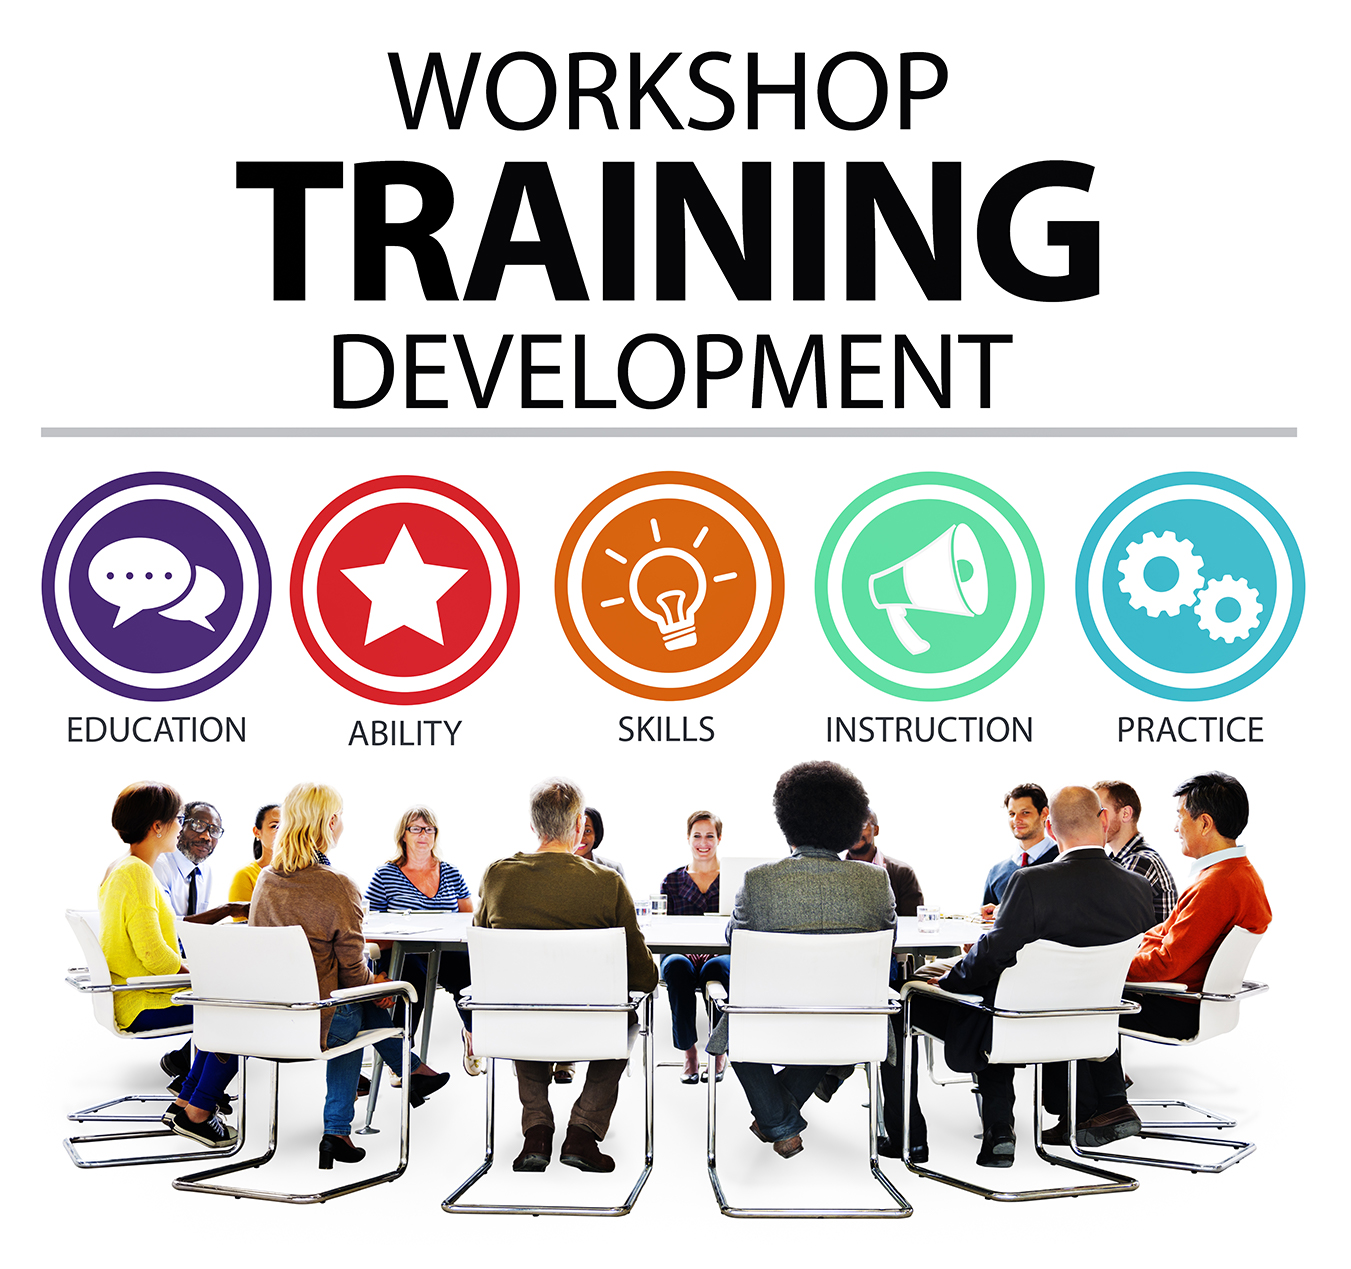 Workshops Training Development